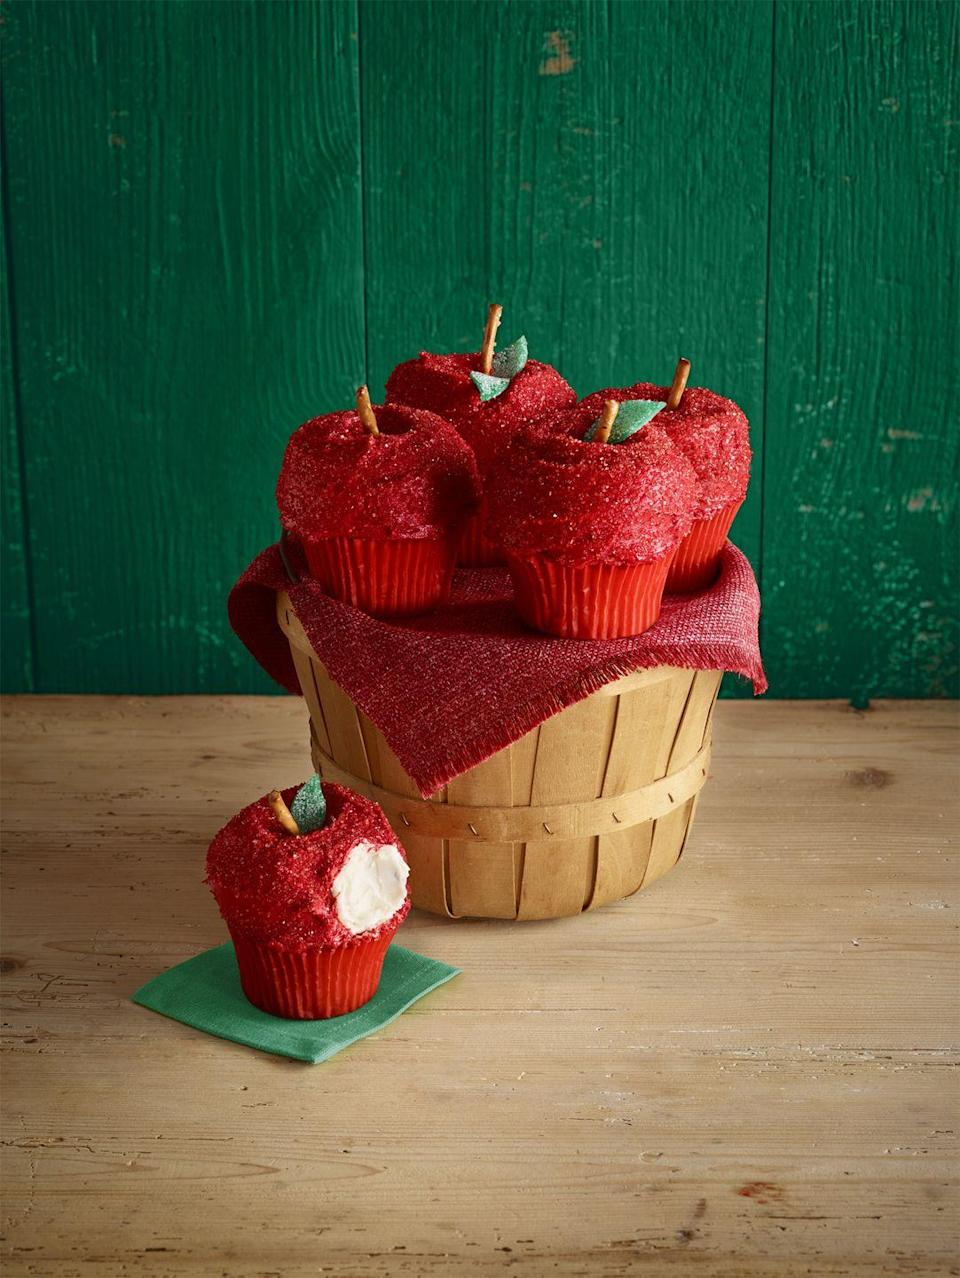 """<p>Your eyes aren't fooling you. Inspired by Red Delicious apples, these adorable fall treats are really cupcakes.</p><p><a href=""""https://www.womansday.com/food-recipes/food-drinks/recipes/a56452/apple-cupcakes-recipe/"""" rel=""""nofollow noopener"""" target=""""_blank"""" data-ylk=""""slk:Get the recipe."""" class=""""link rapid-noclick-resp""""><strong>Get the recipe.</strong></a></p>"""